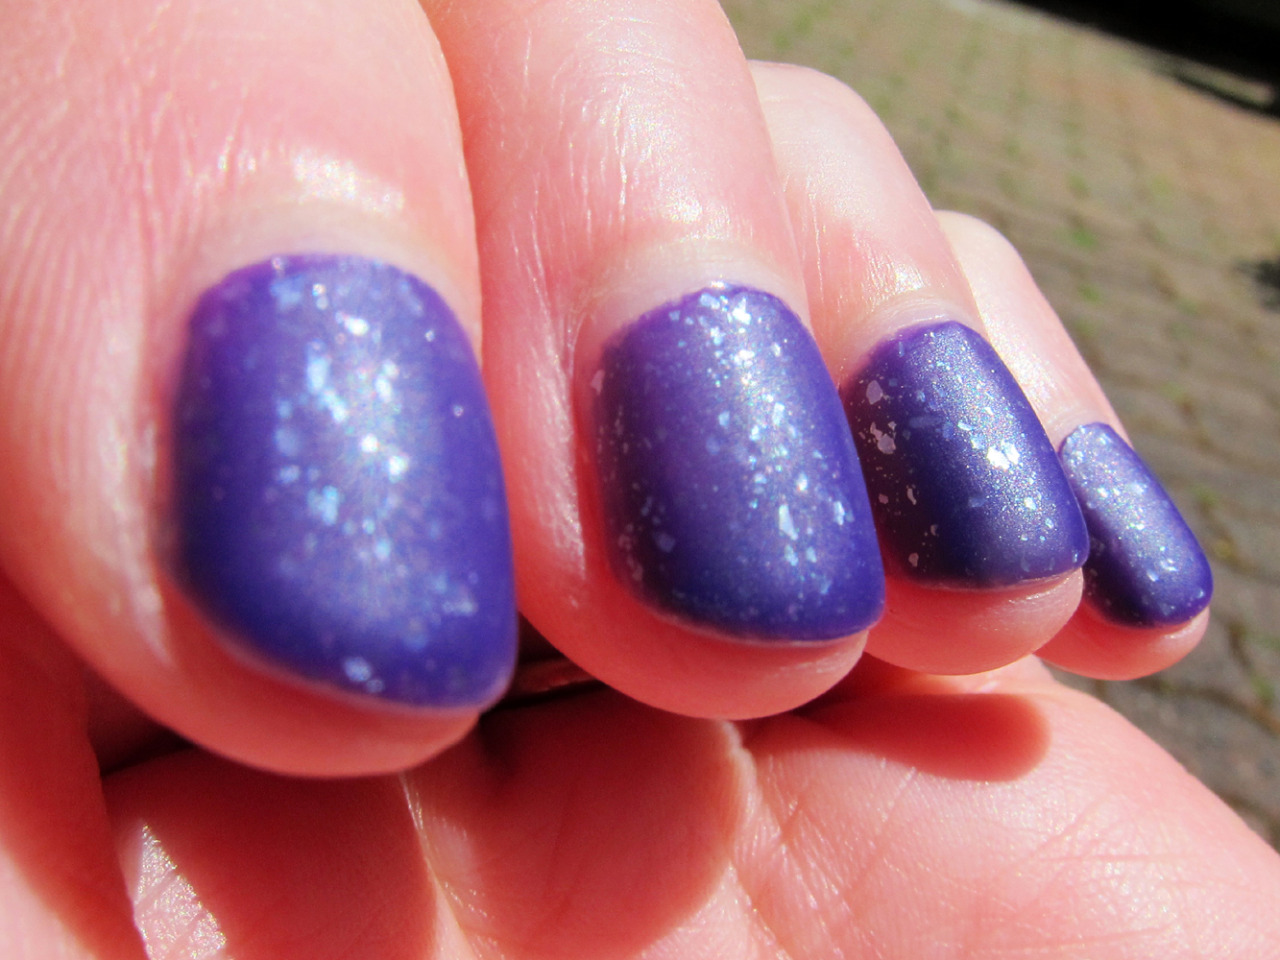 aida's closet: manicure - matte purple with silver flakies